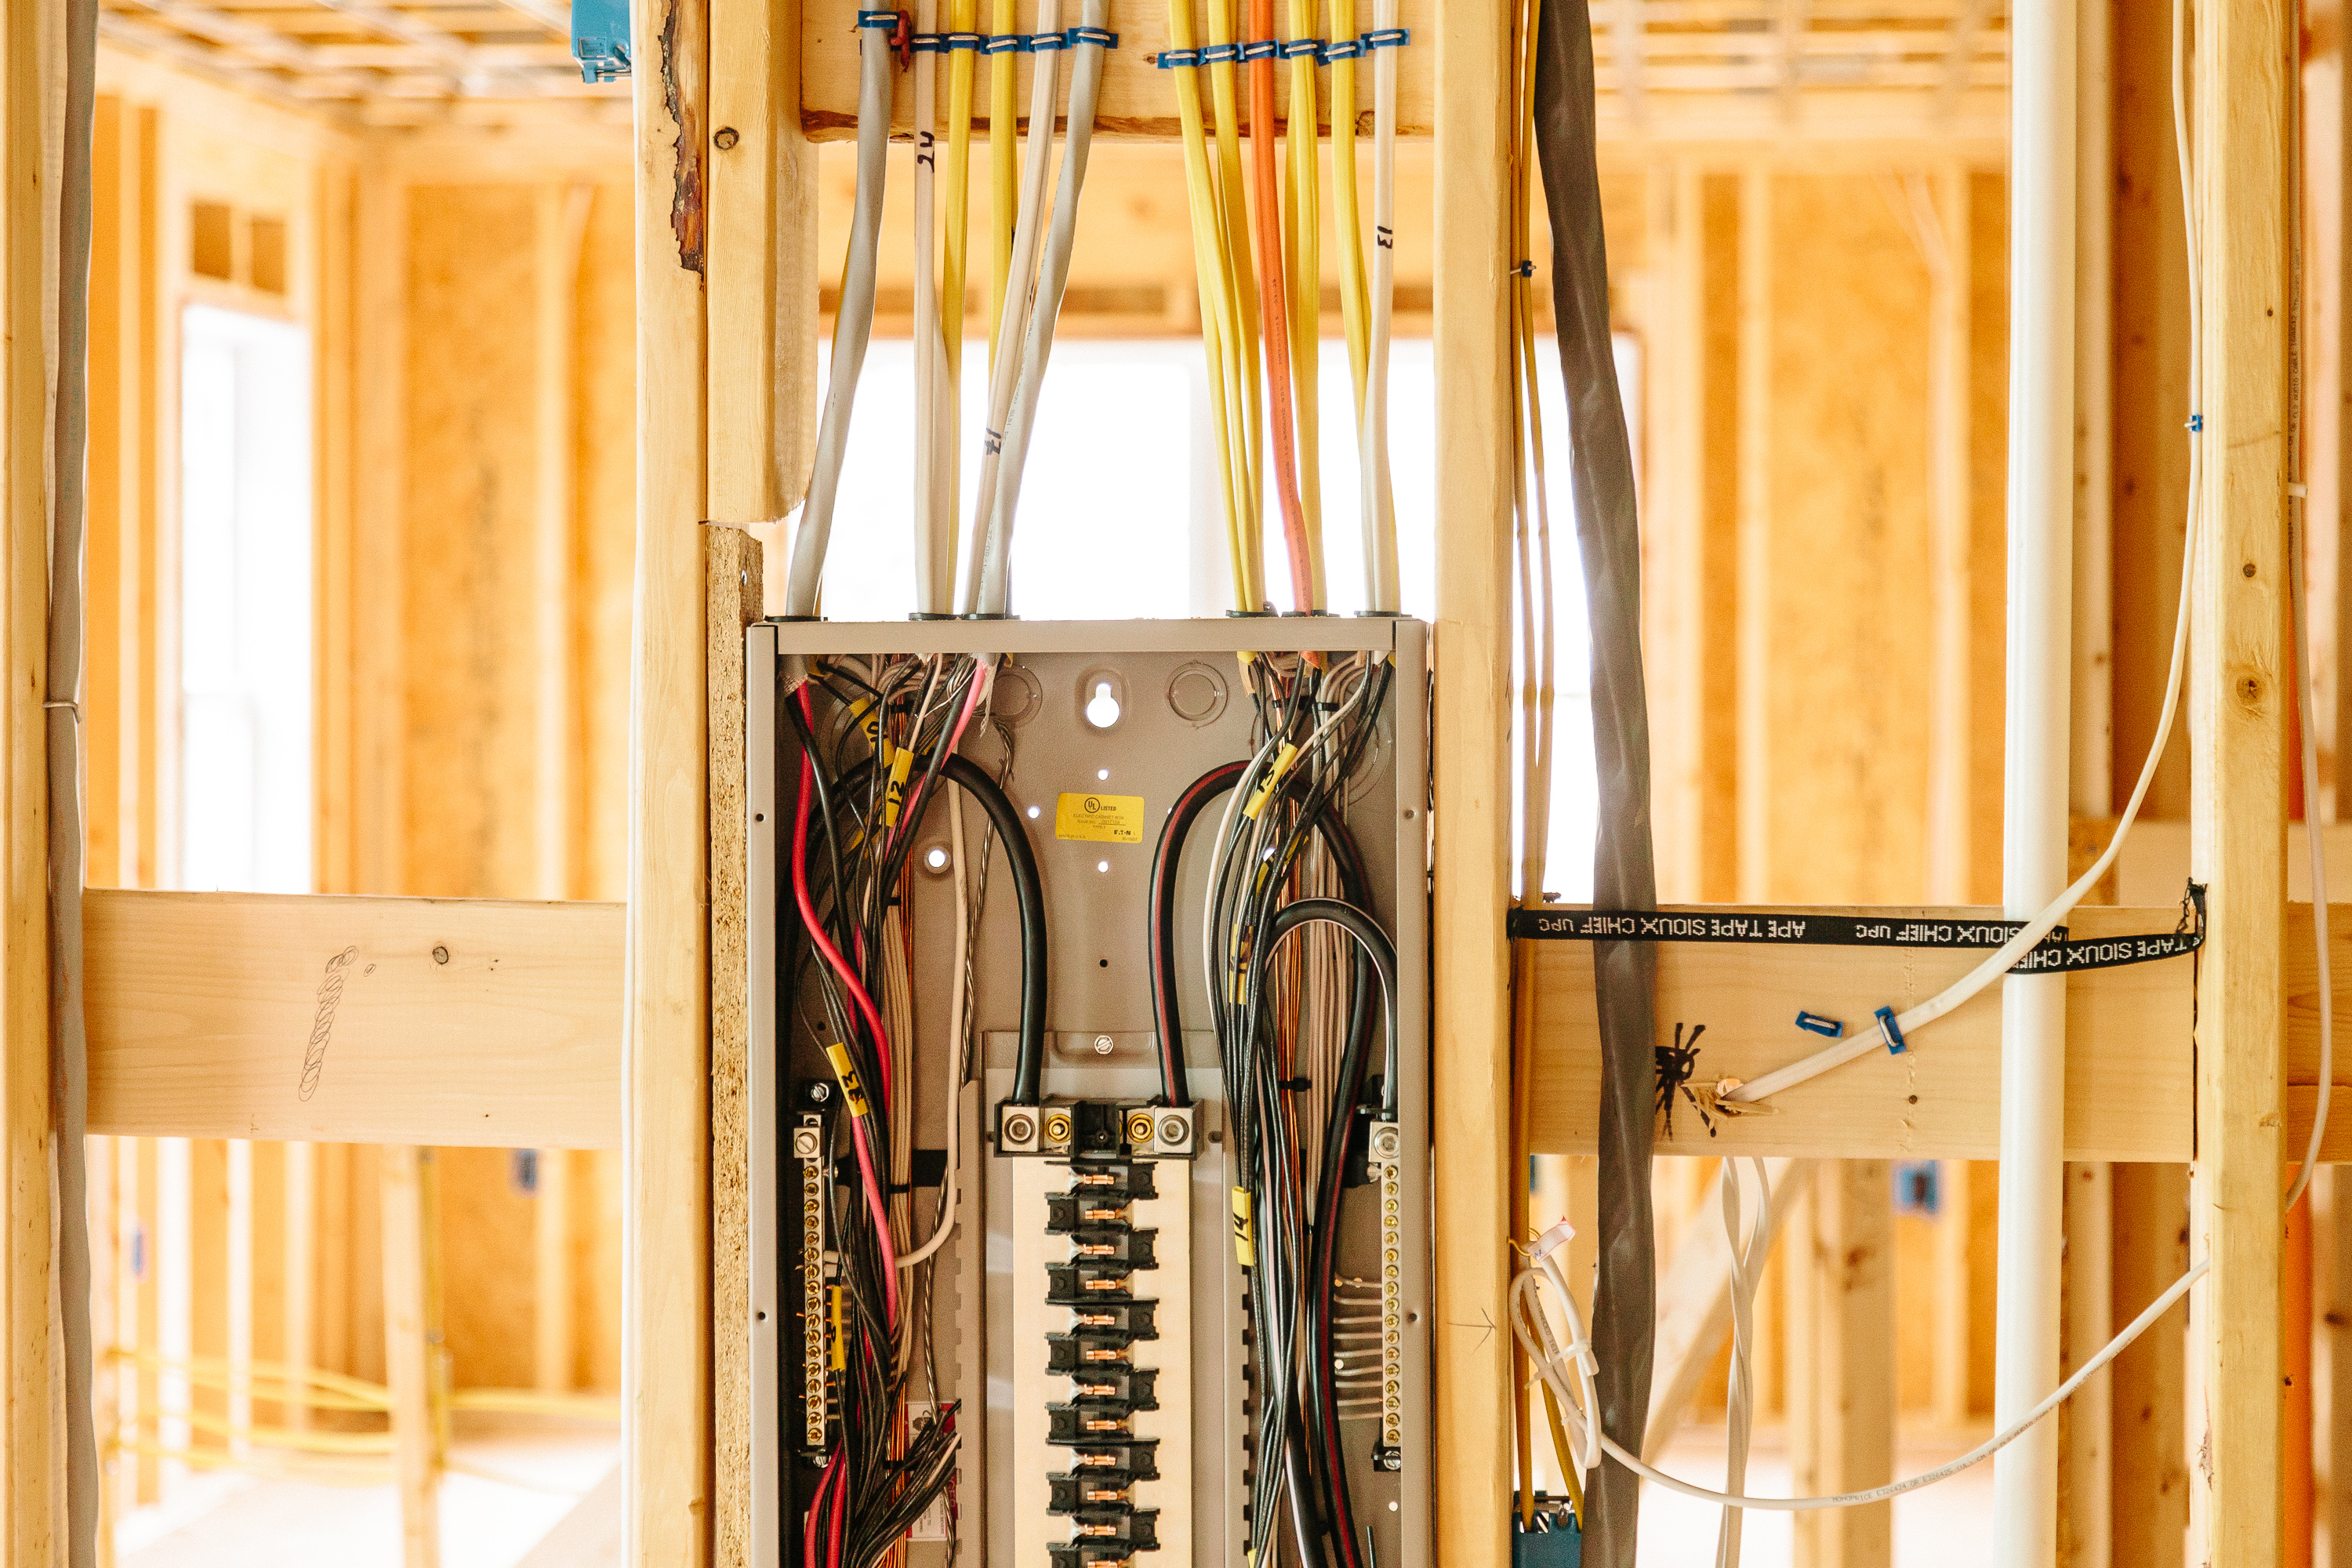 Image of electrical panel in home